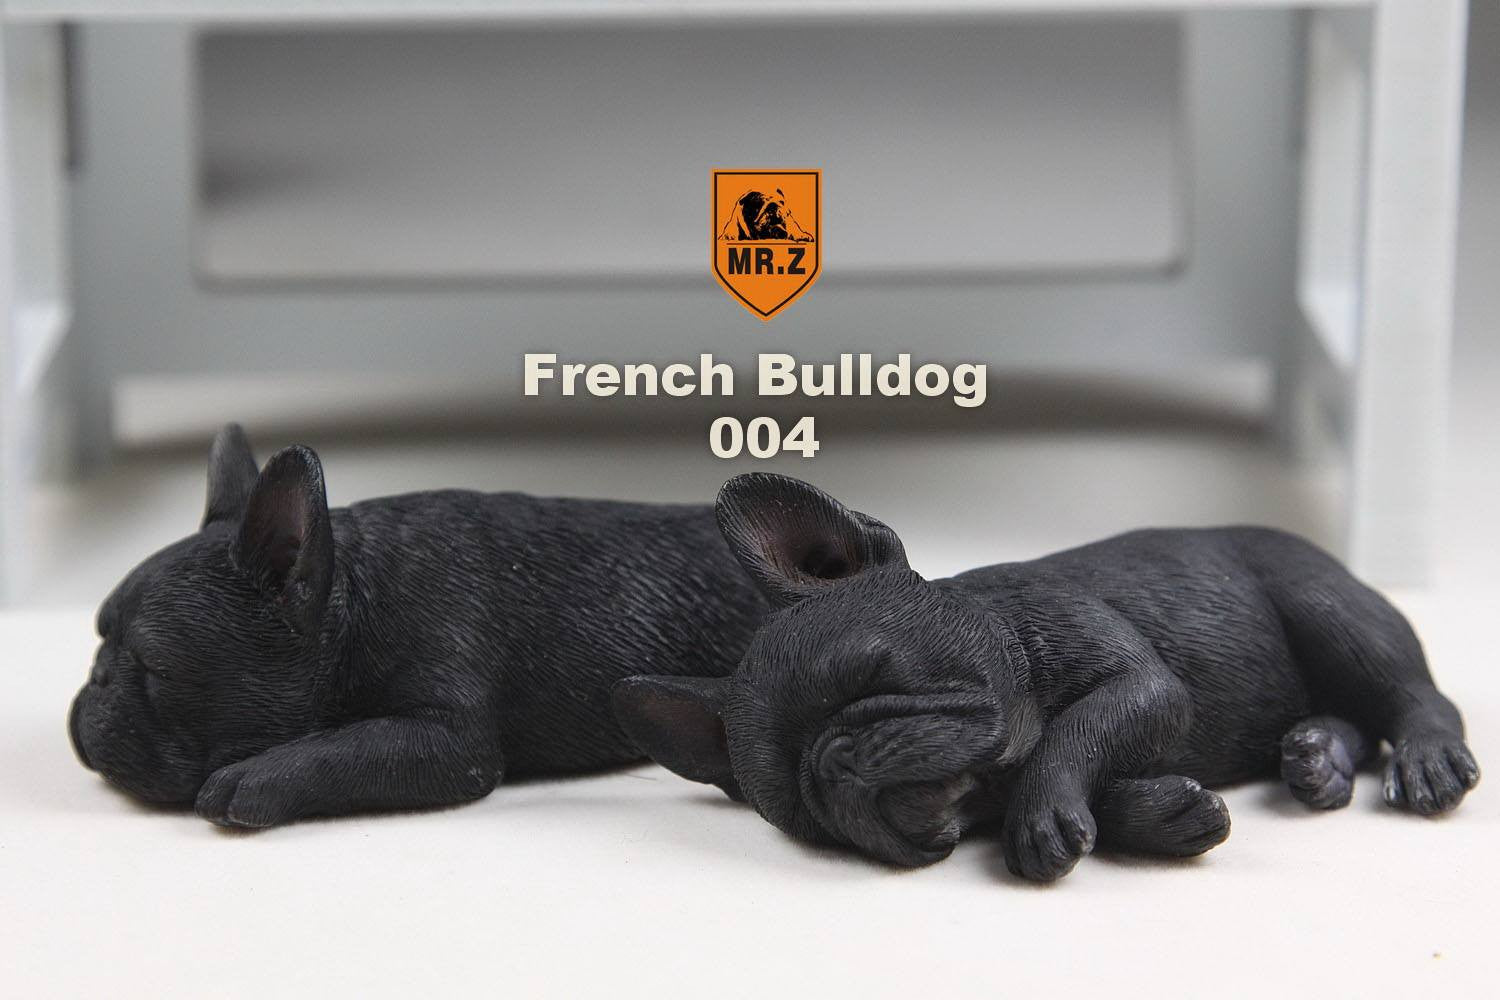 MR.Z - Real Animal Series No.9 - 1/6th Scale French Bulldog (Sleep Mode) 001-005 - Marvelous Toys - 19